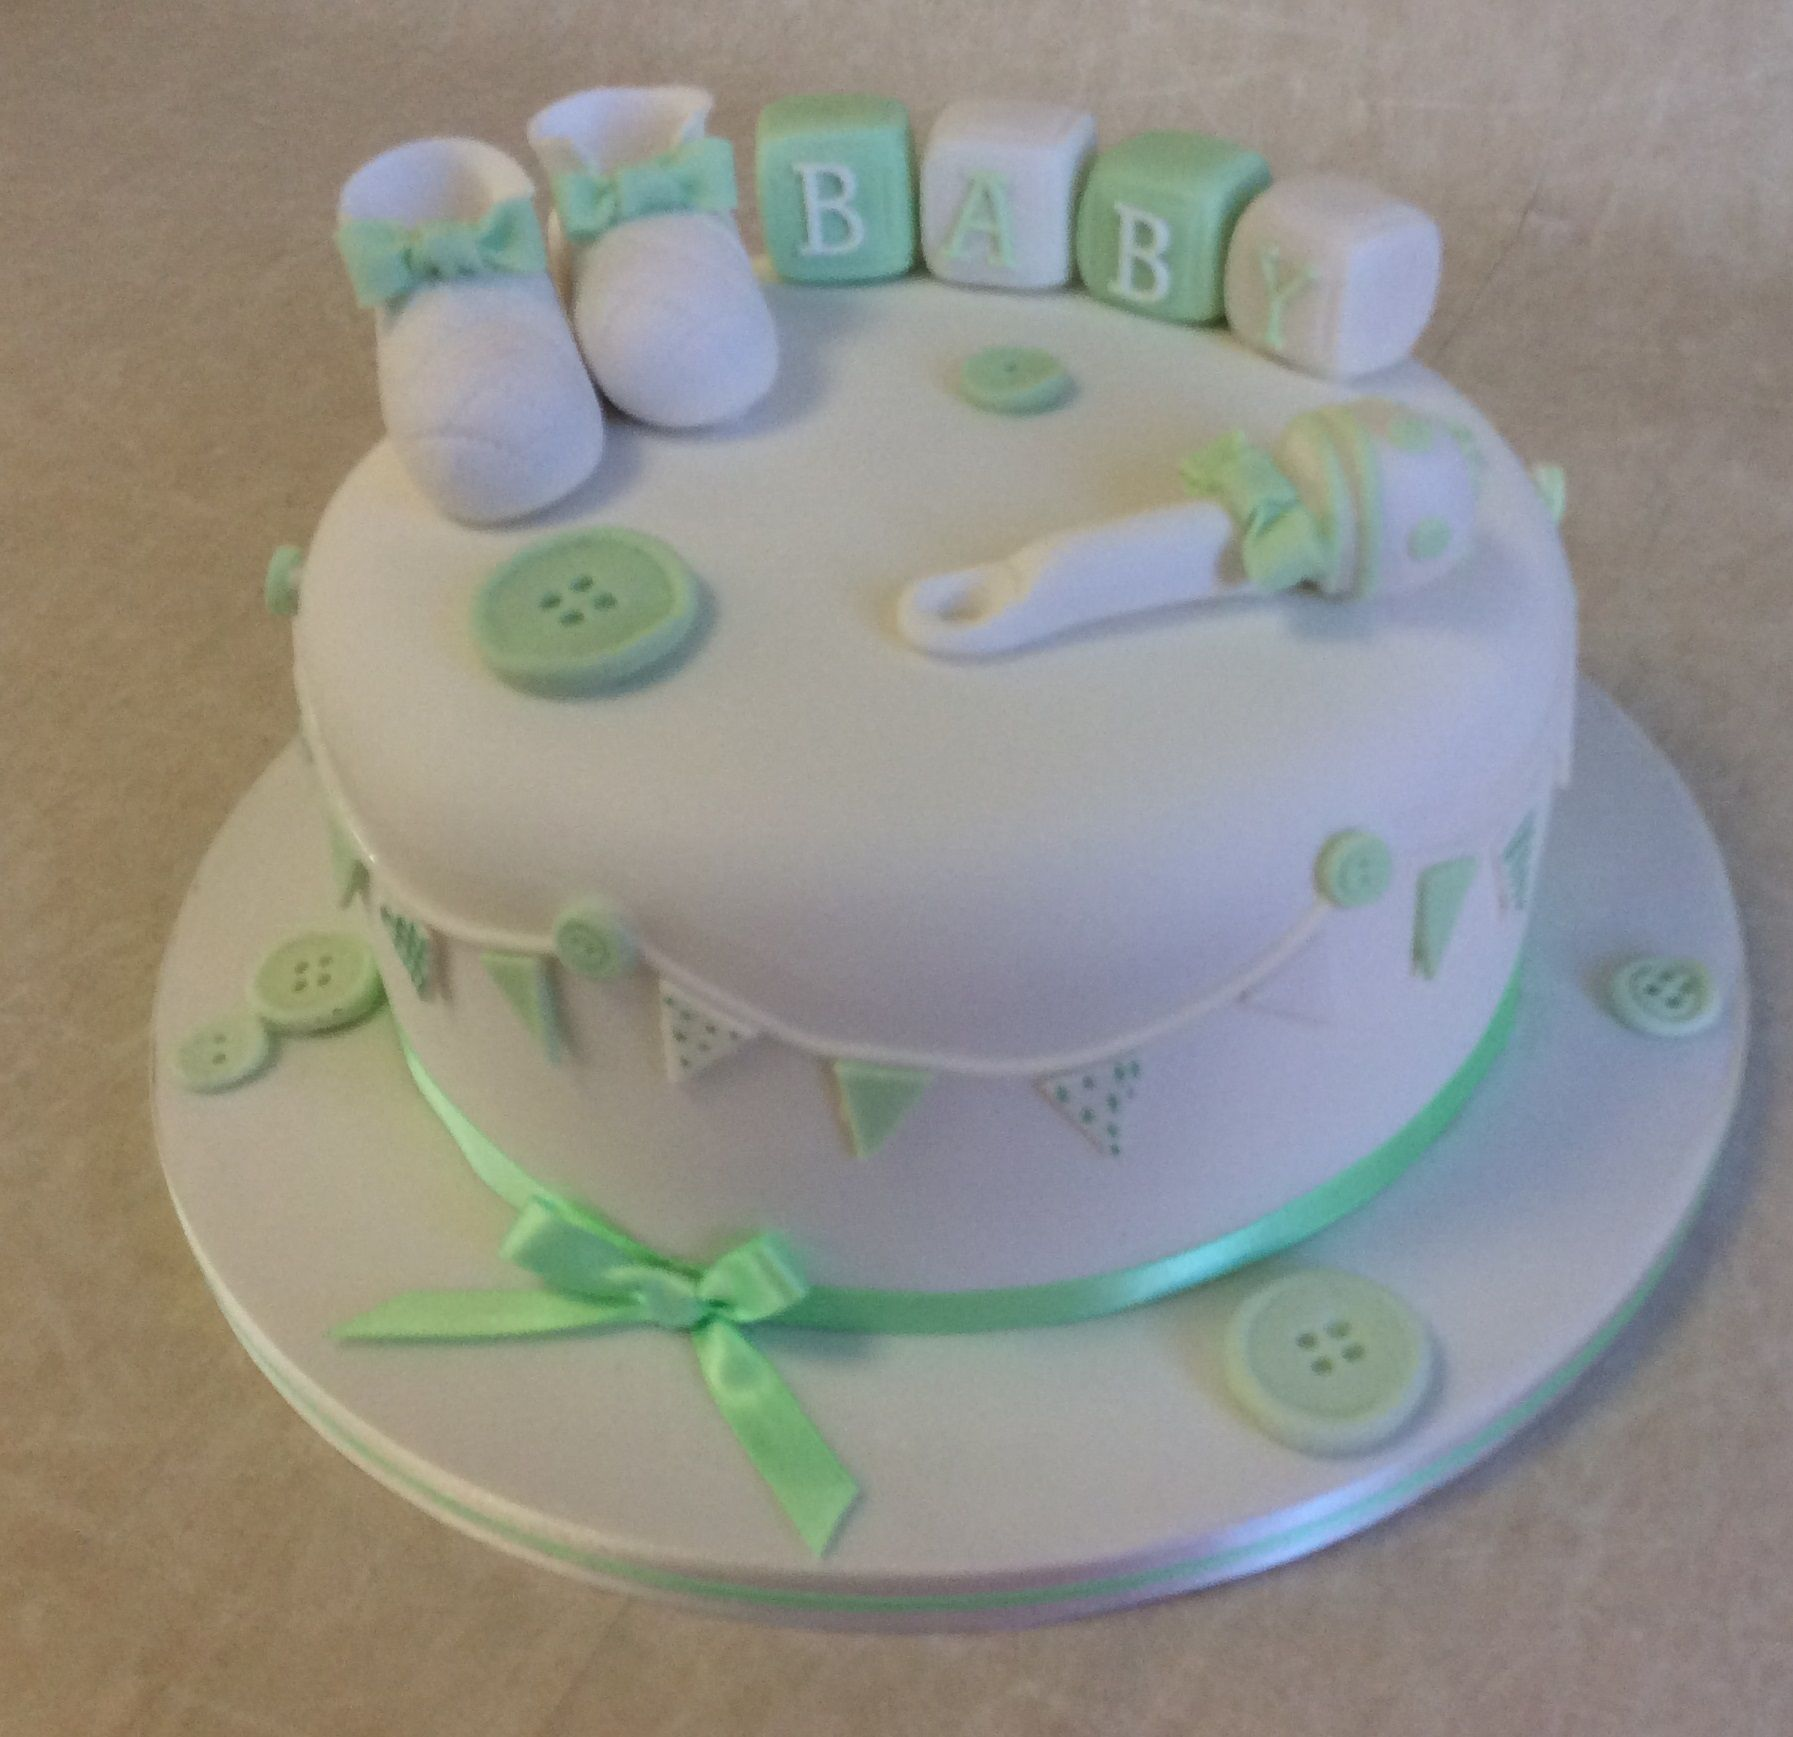 Our Most Popular Baby Shower Cake Design In Mint Green And White